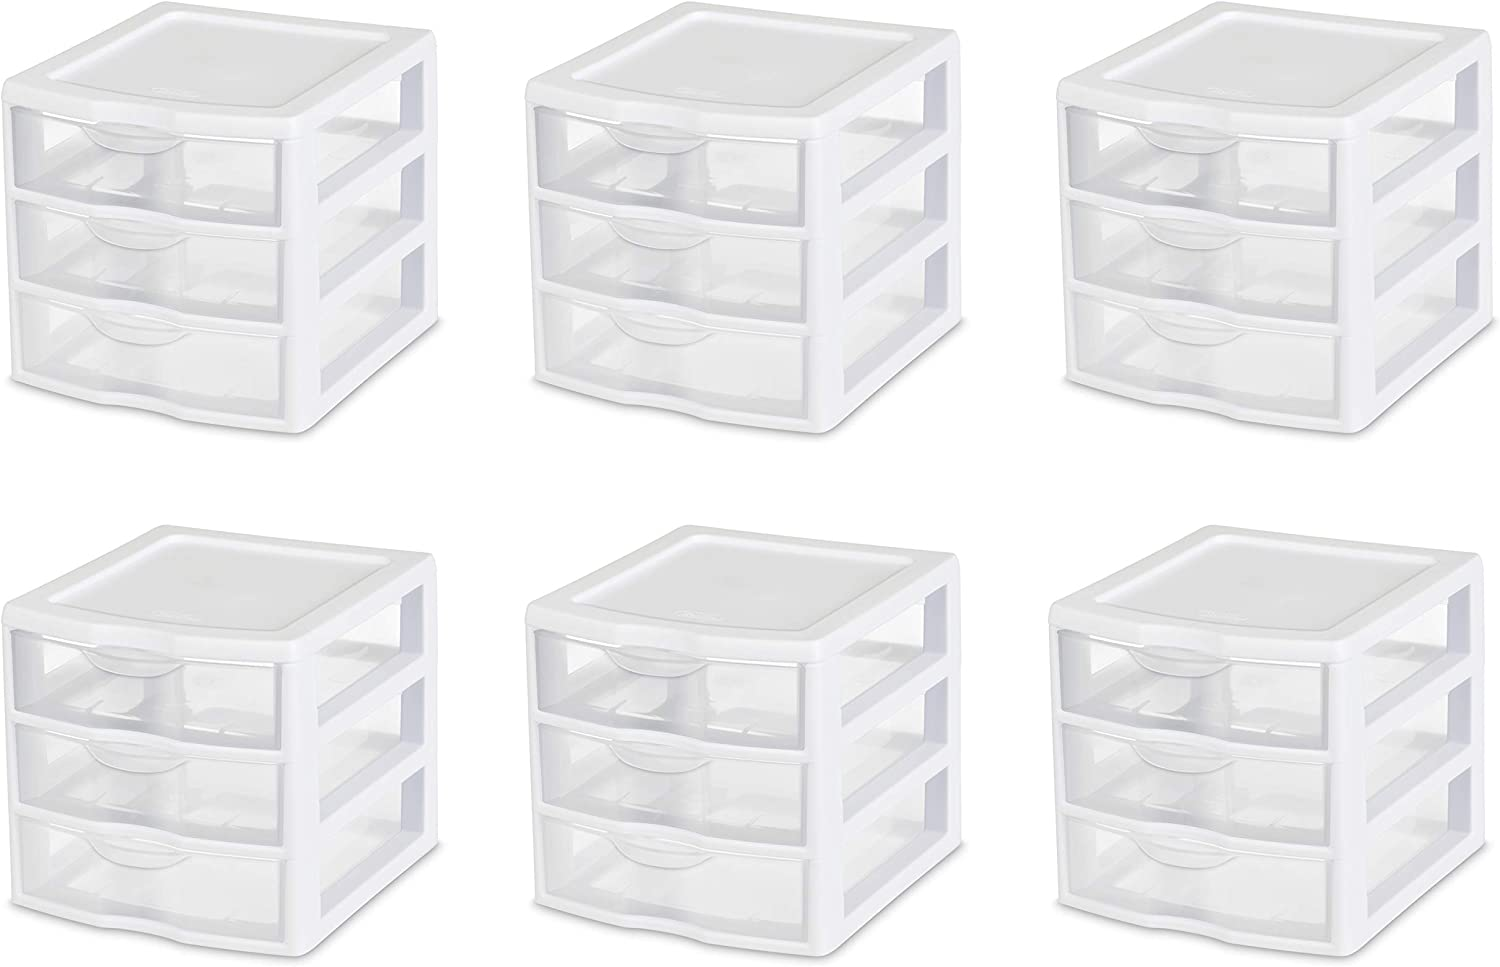 White Frame with Clear Drawers 6-Pack 2-PACK 20738006 Small 3 Drawer Unit